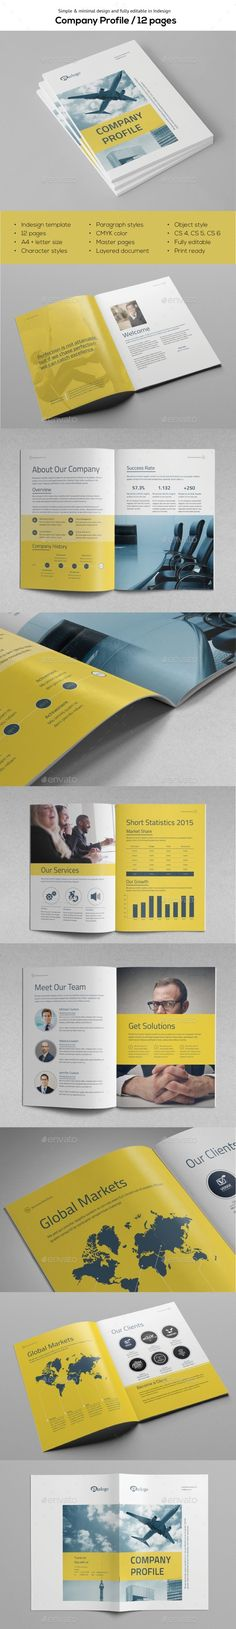 Company Profile Brochure Template InDesign INDD. Download here: https://graphicriver.net/item/company-profile-vol1/17484925?ref=ksioks